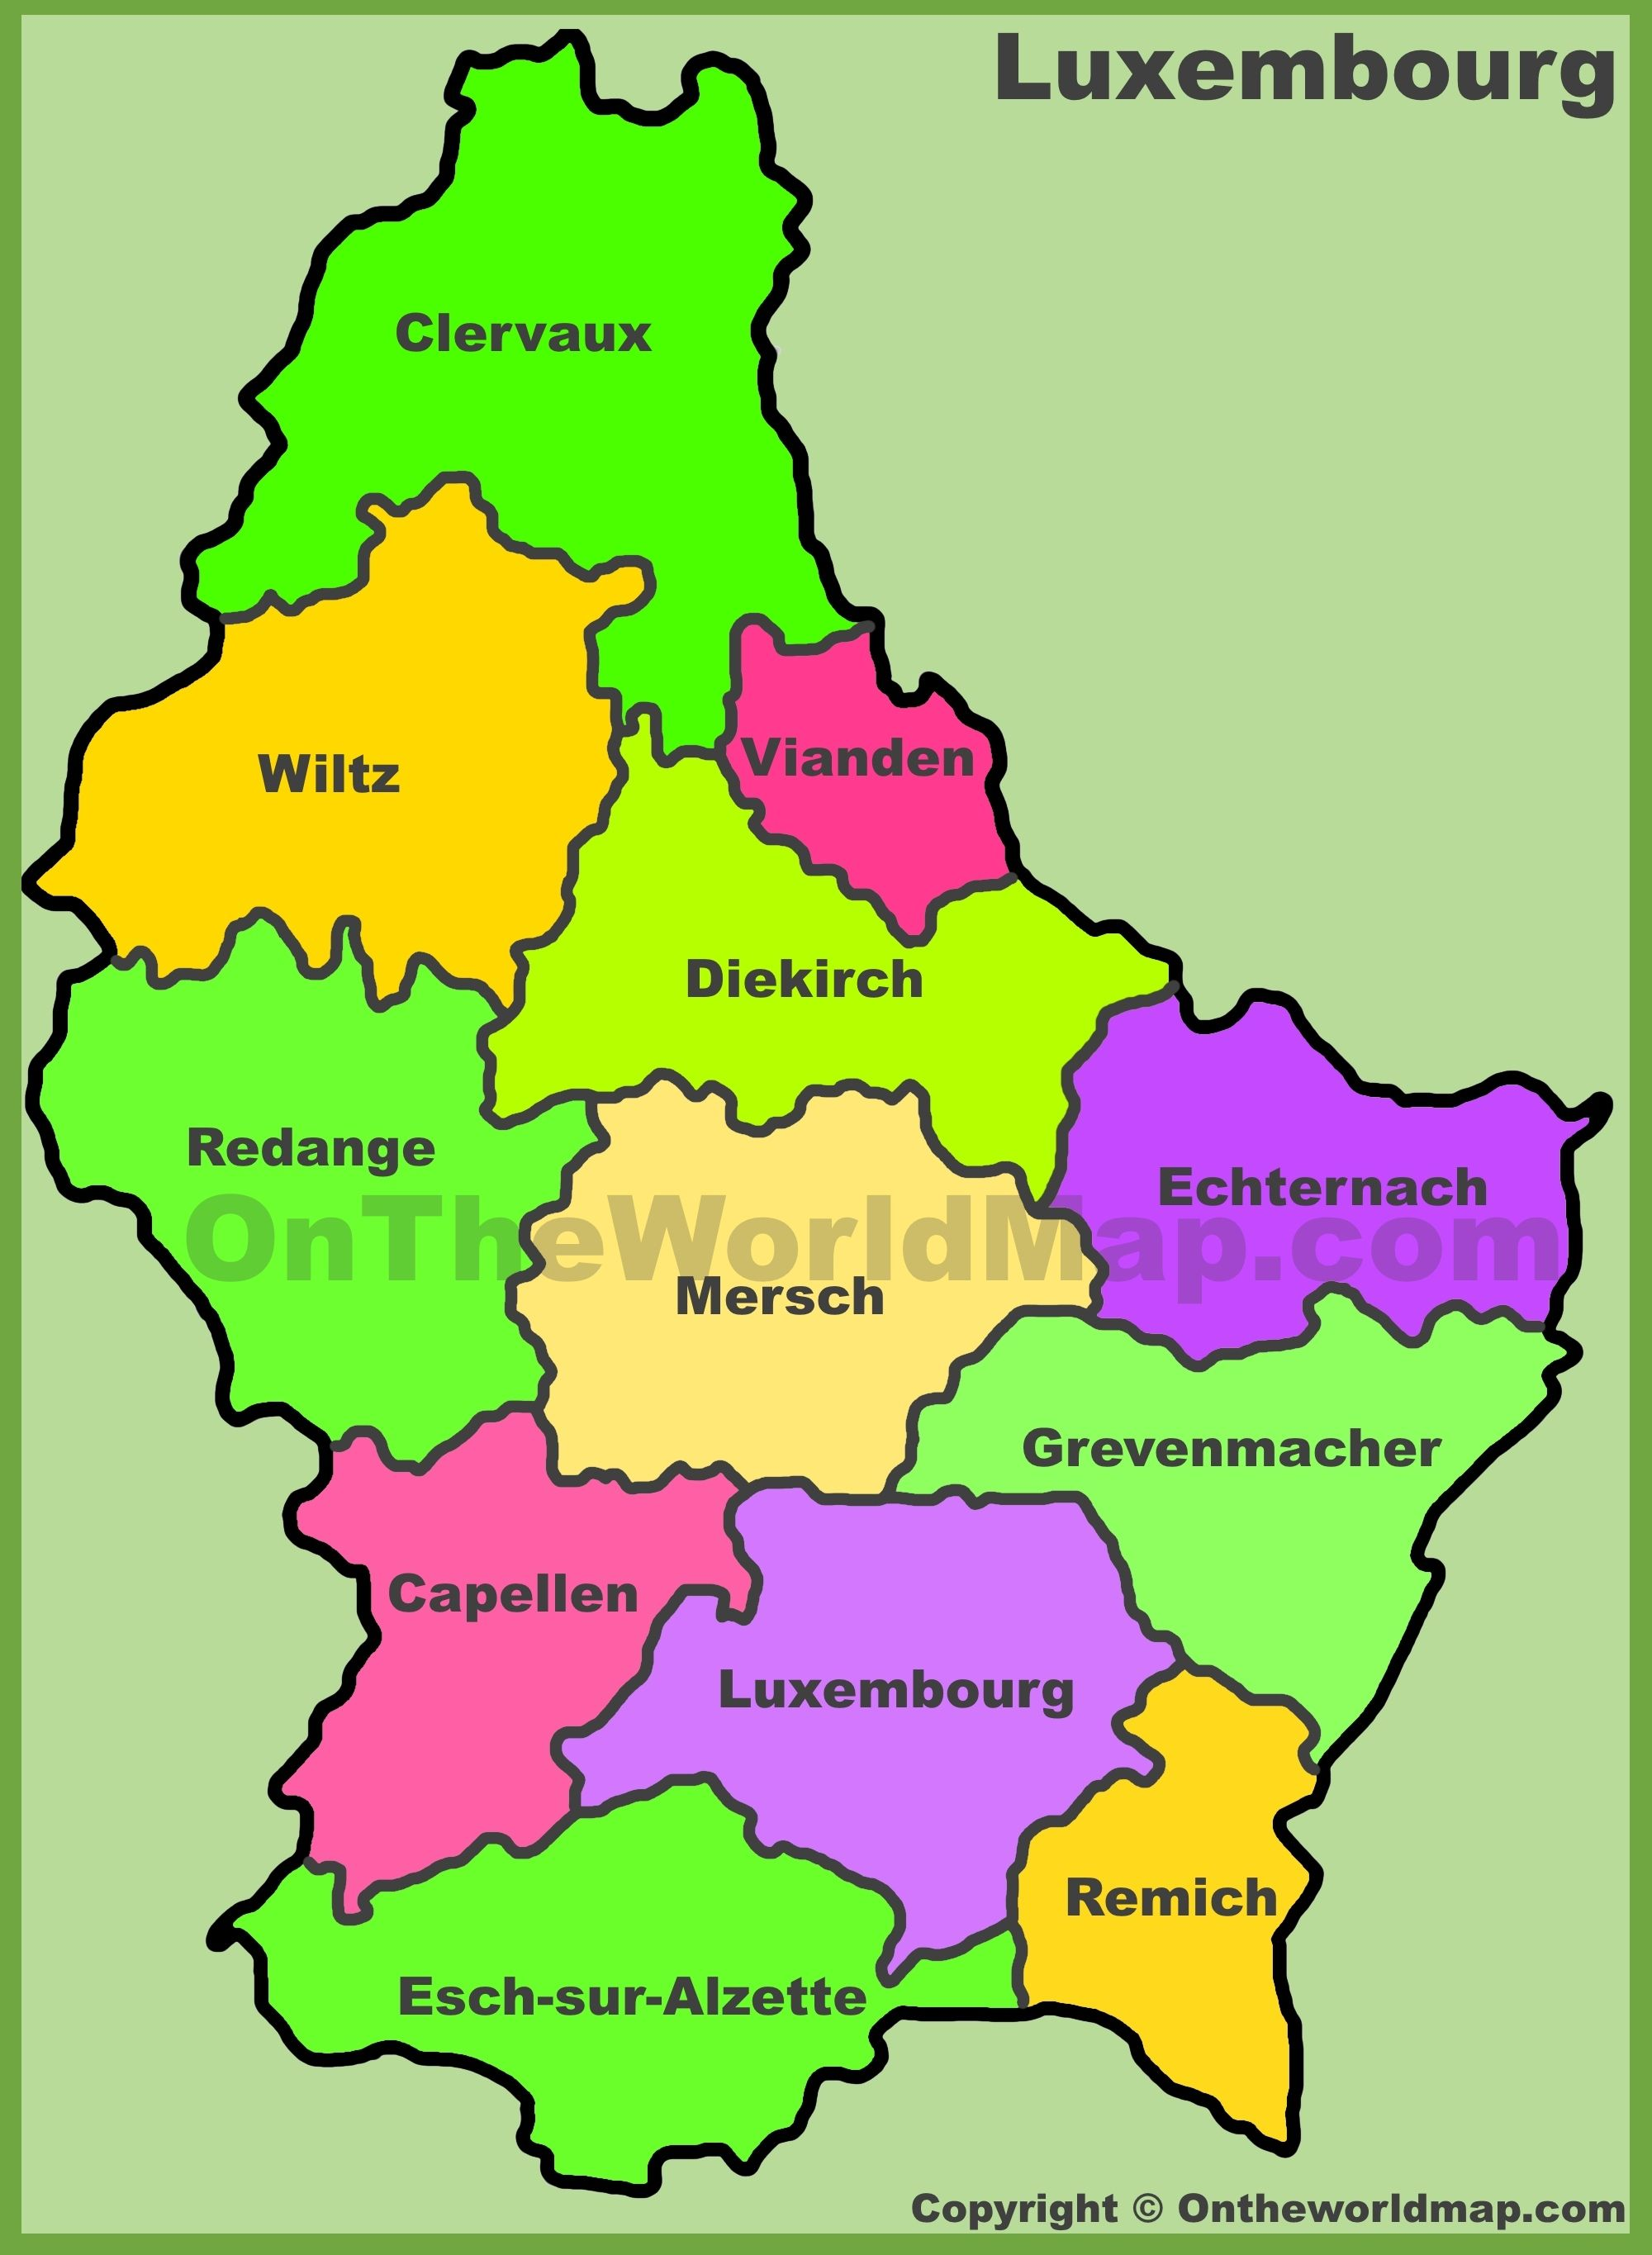 Luxembourg Cantons Map The Federation Of Benelux Luxembourg Map